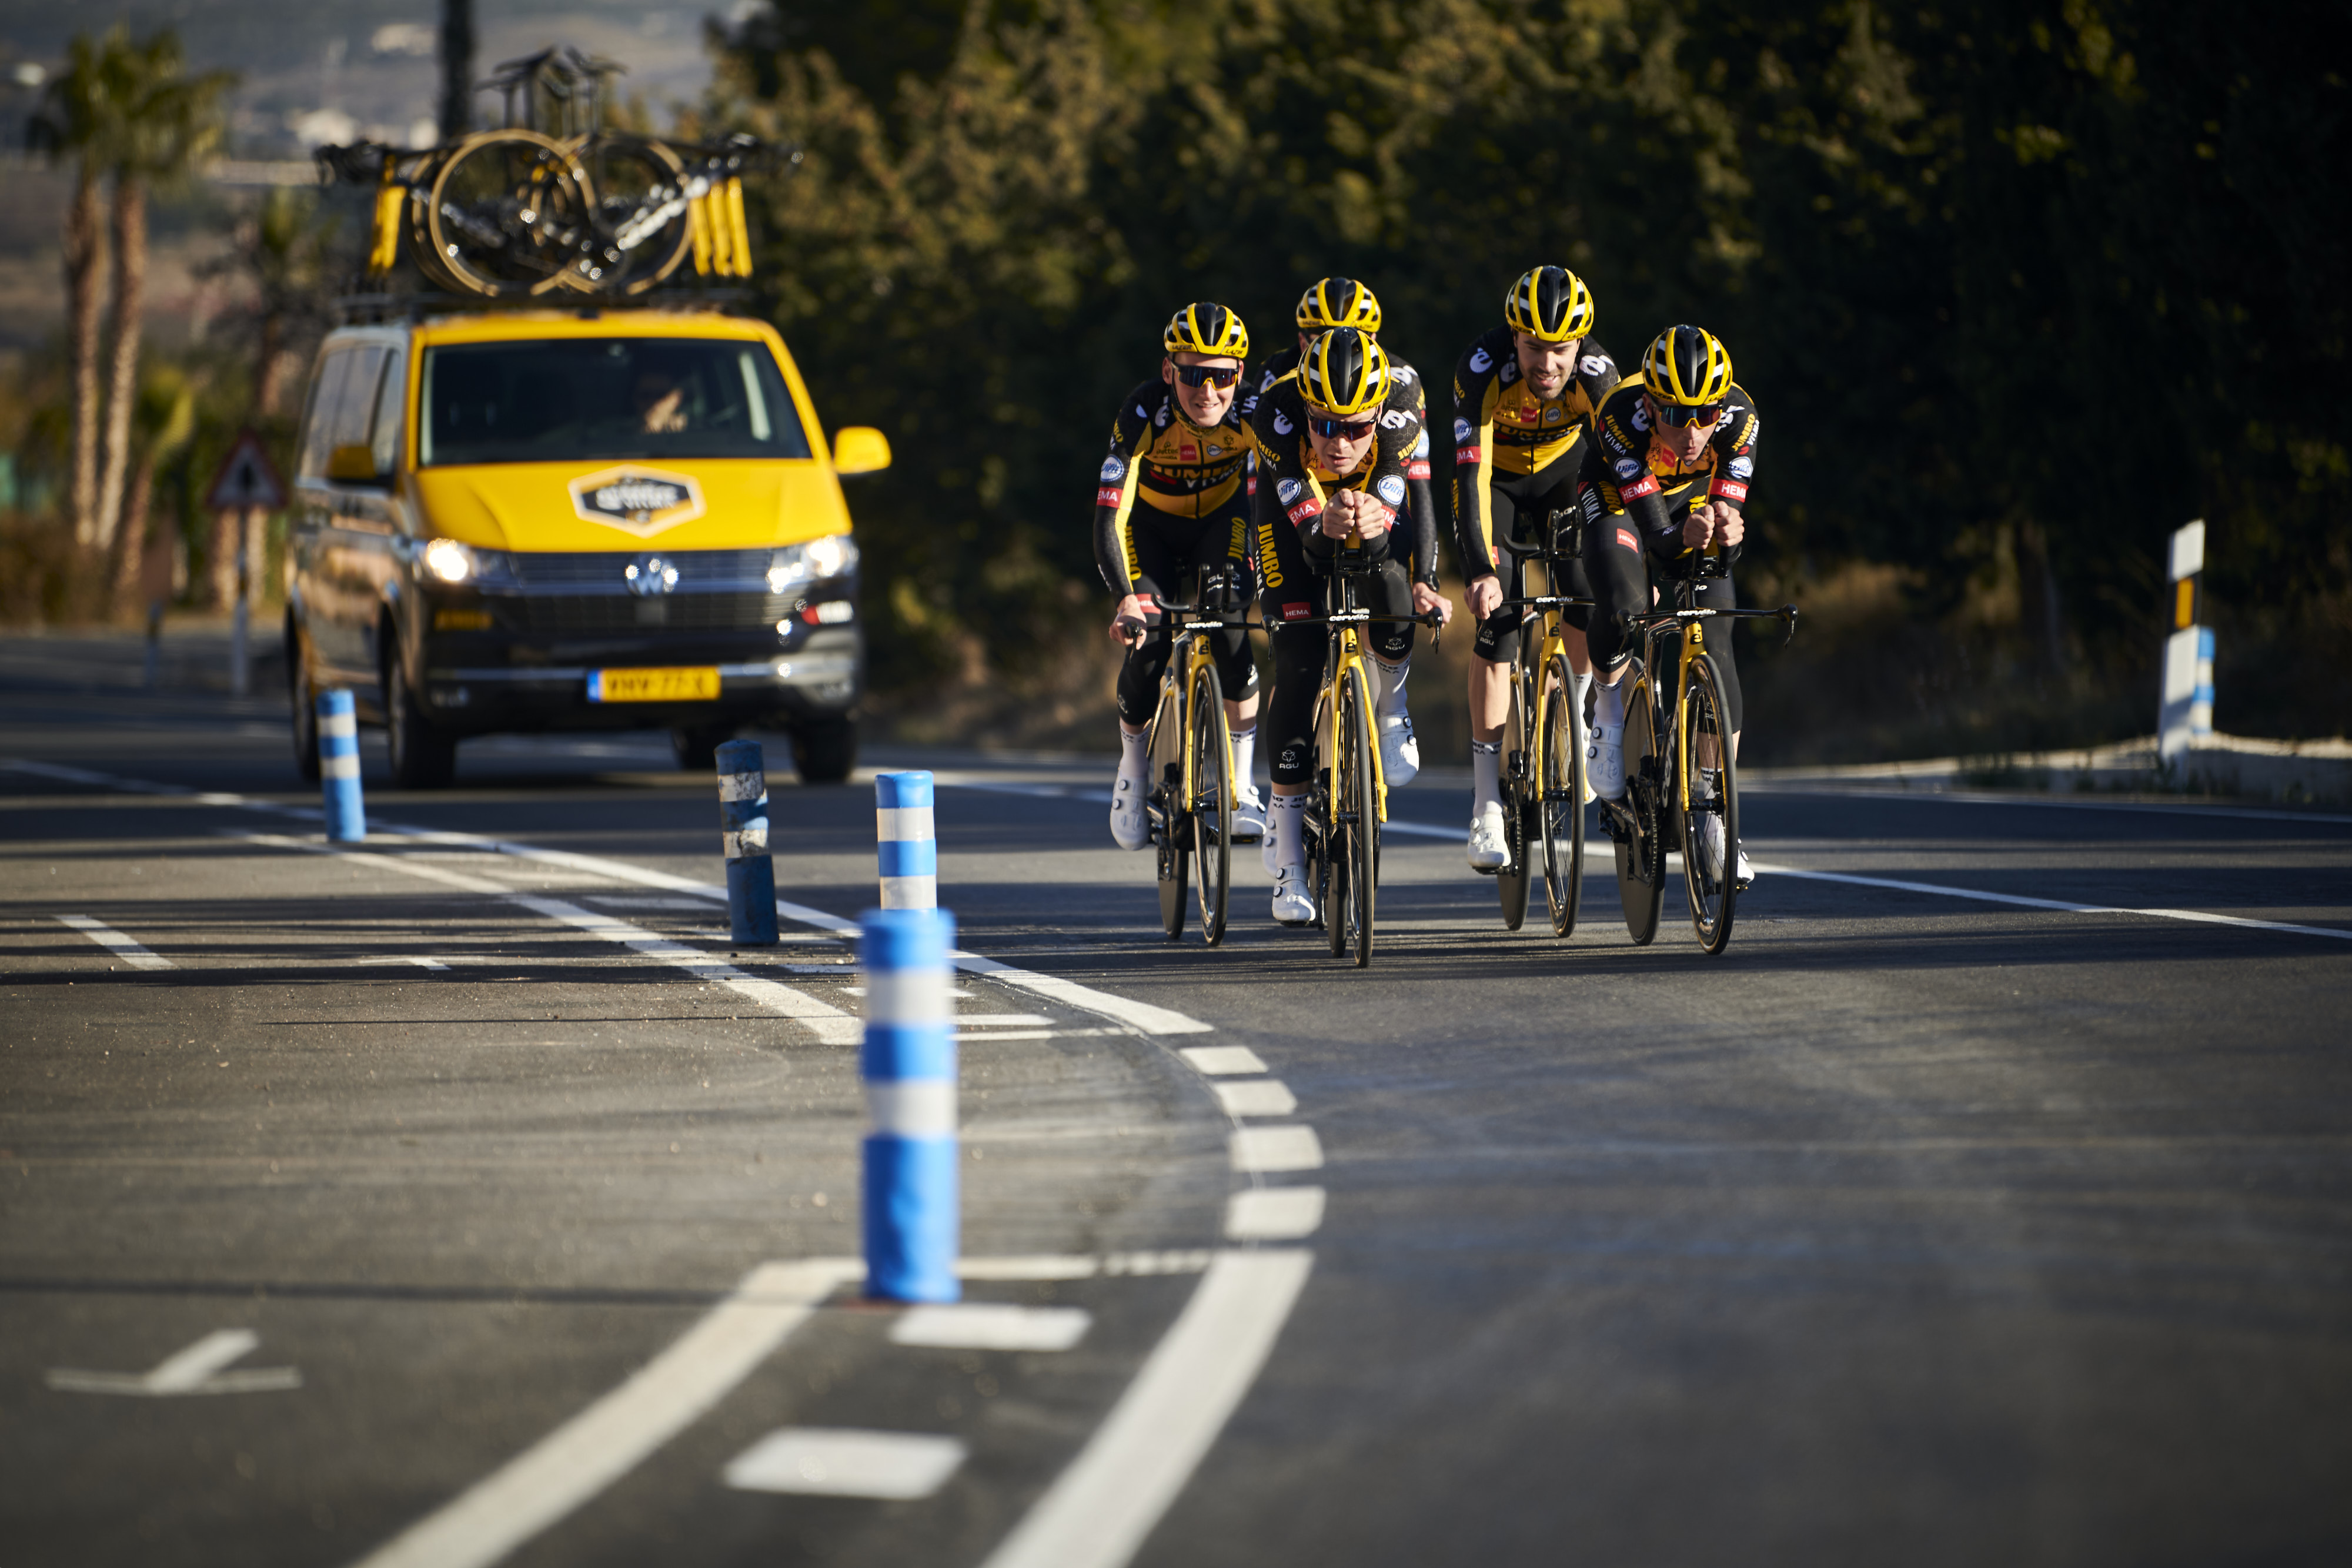 Training camp Alicante, five Team Jumbo-Visma pro cyclists on a track with a Skoda team van with spare bikes on top.